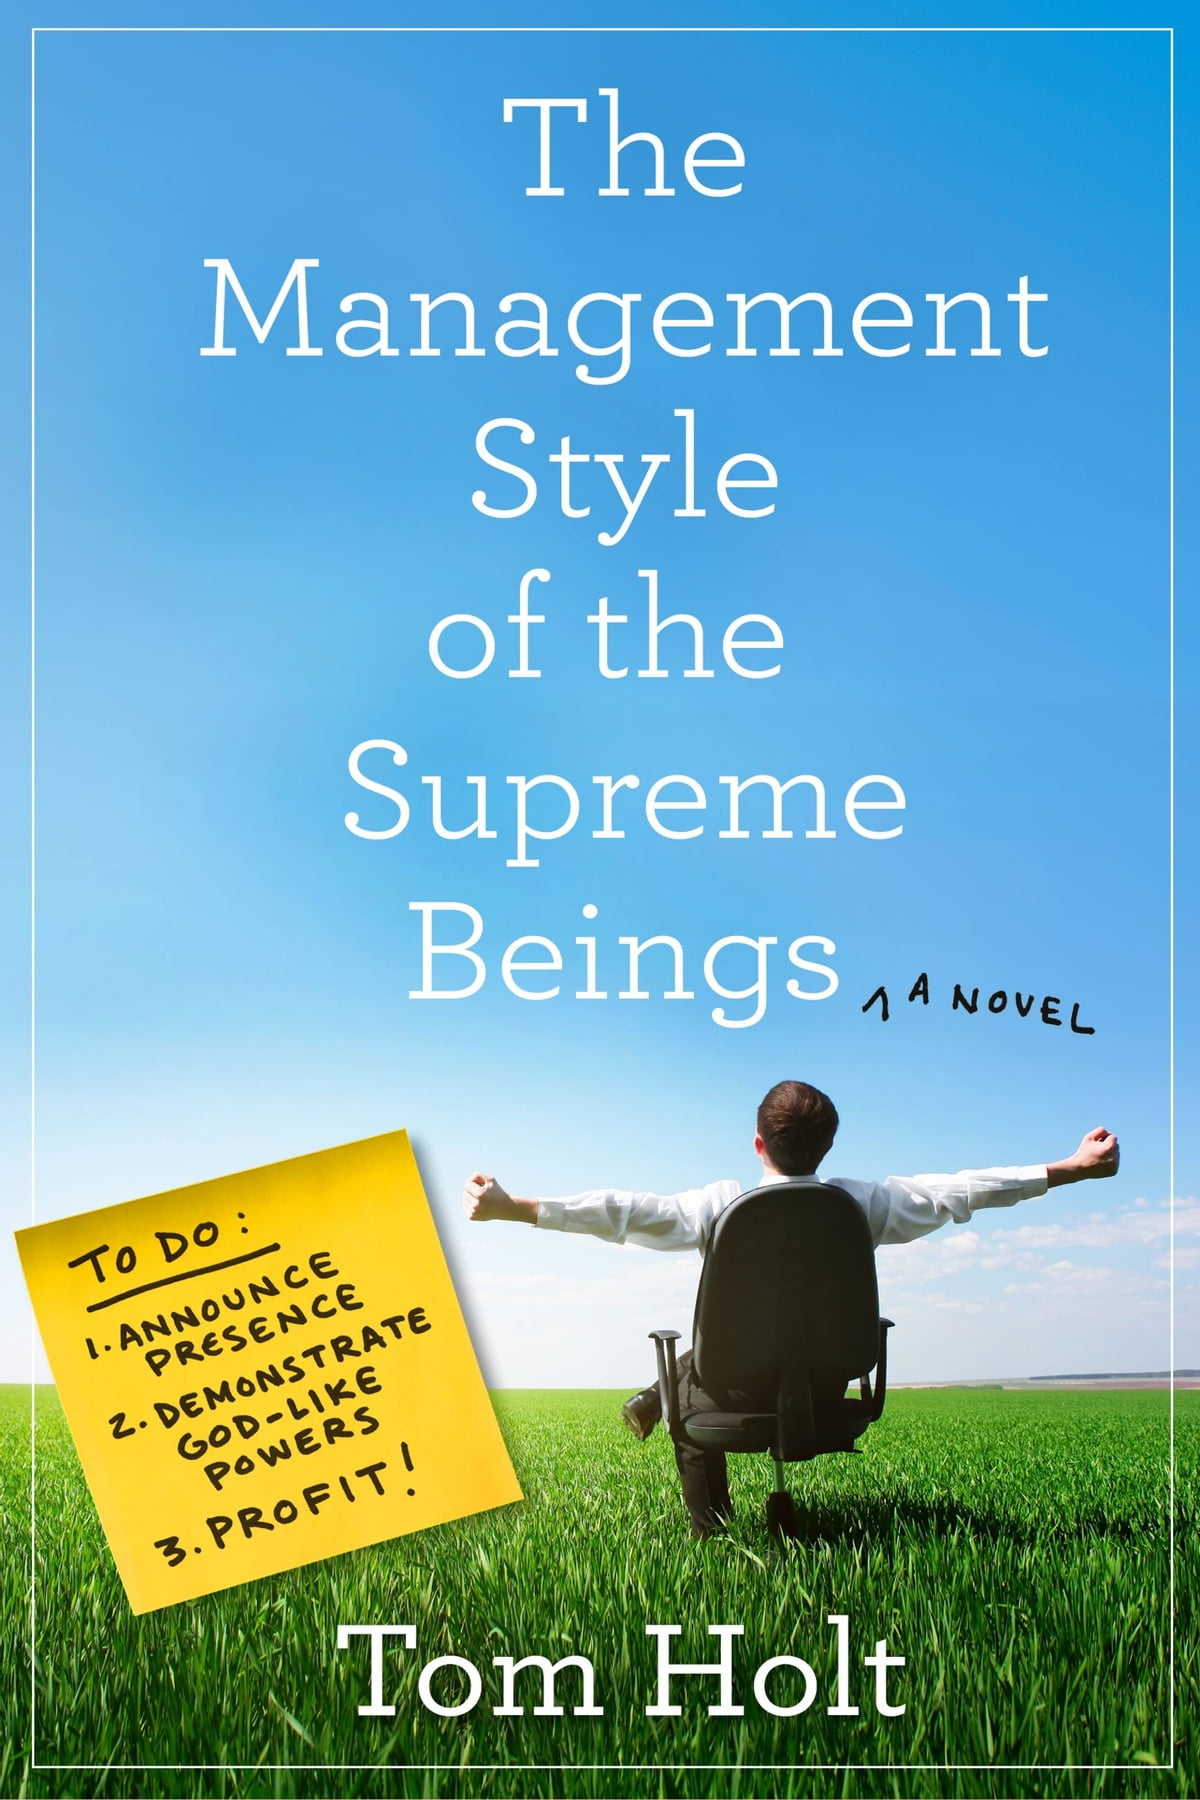 The Management Style Of The Supreme Beings Ebook By Tom Holt   9780316270816  Rakuten Kobo